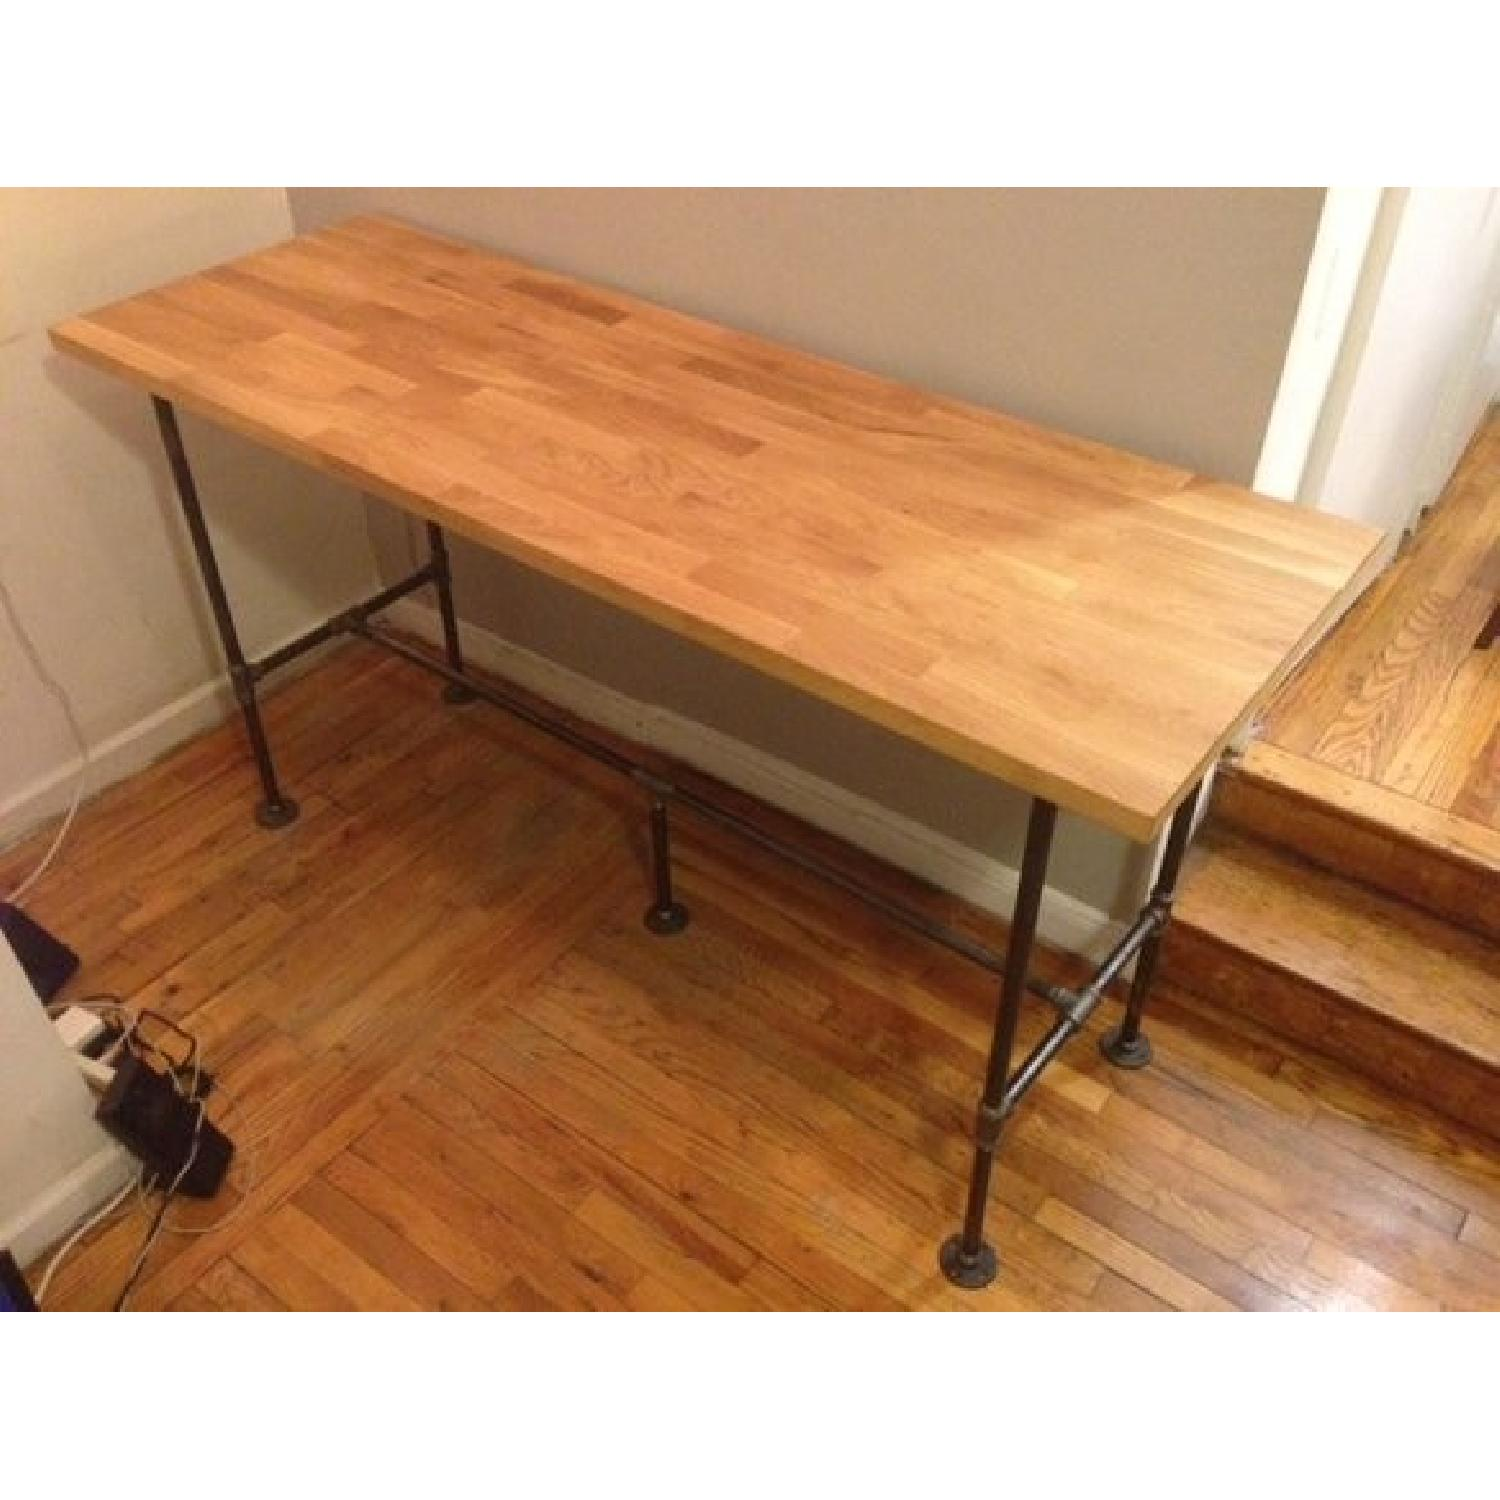 Industrial High Top Table: Industrial High Top Counter/ Dining Table/Standing Desk-4